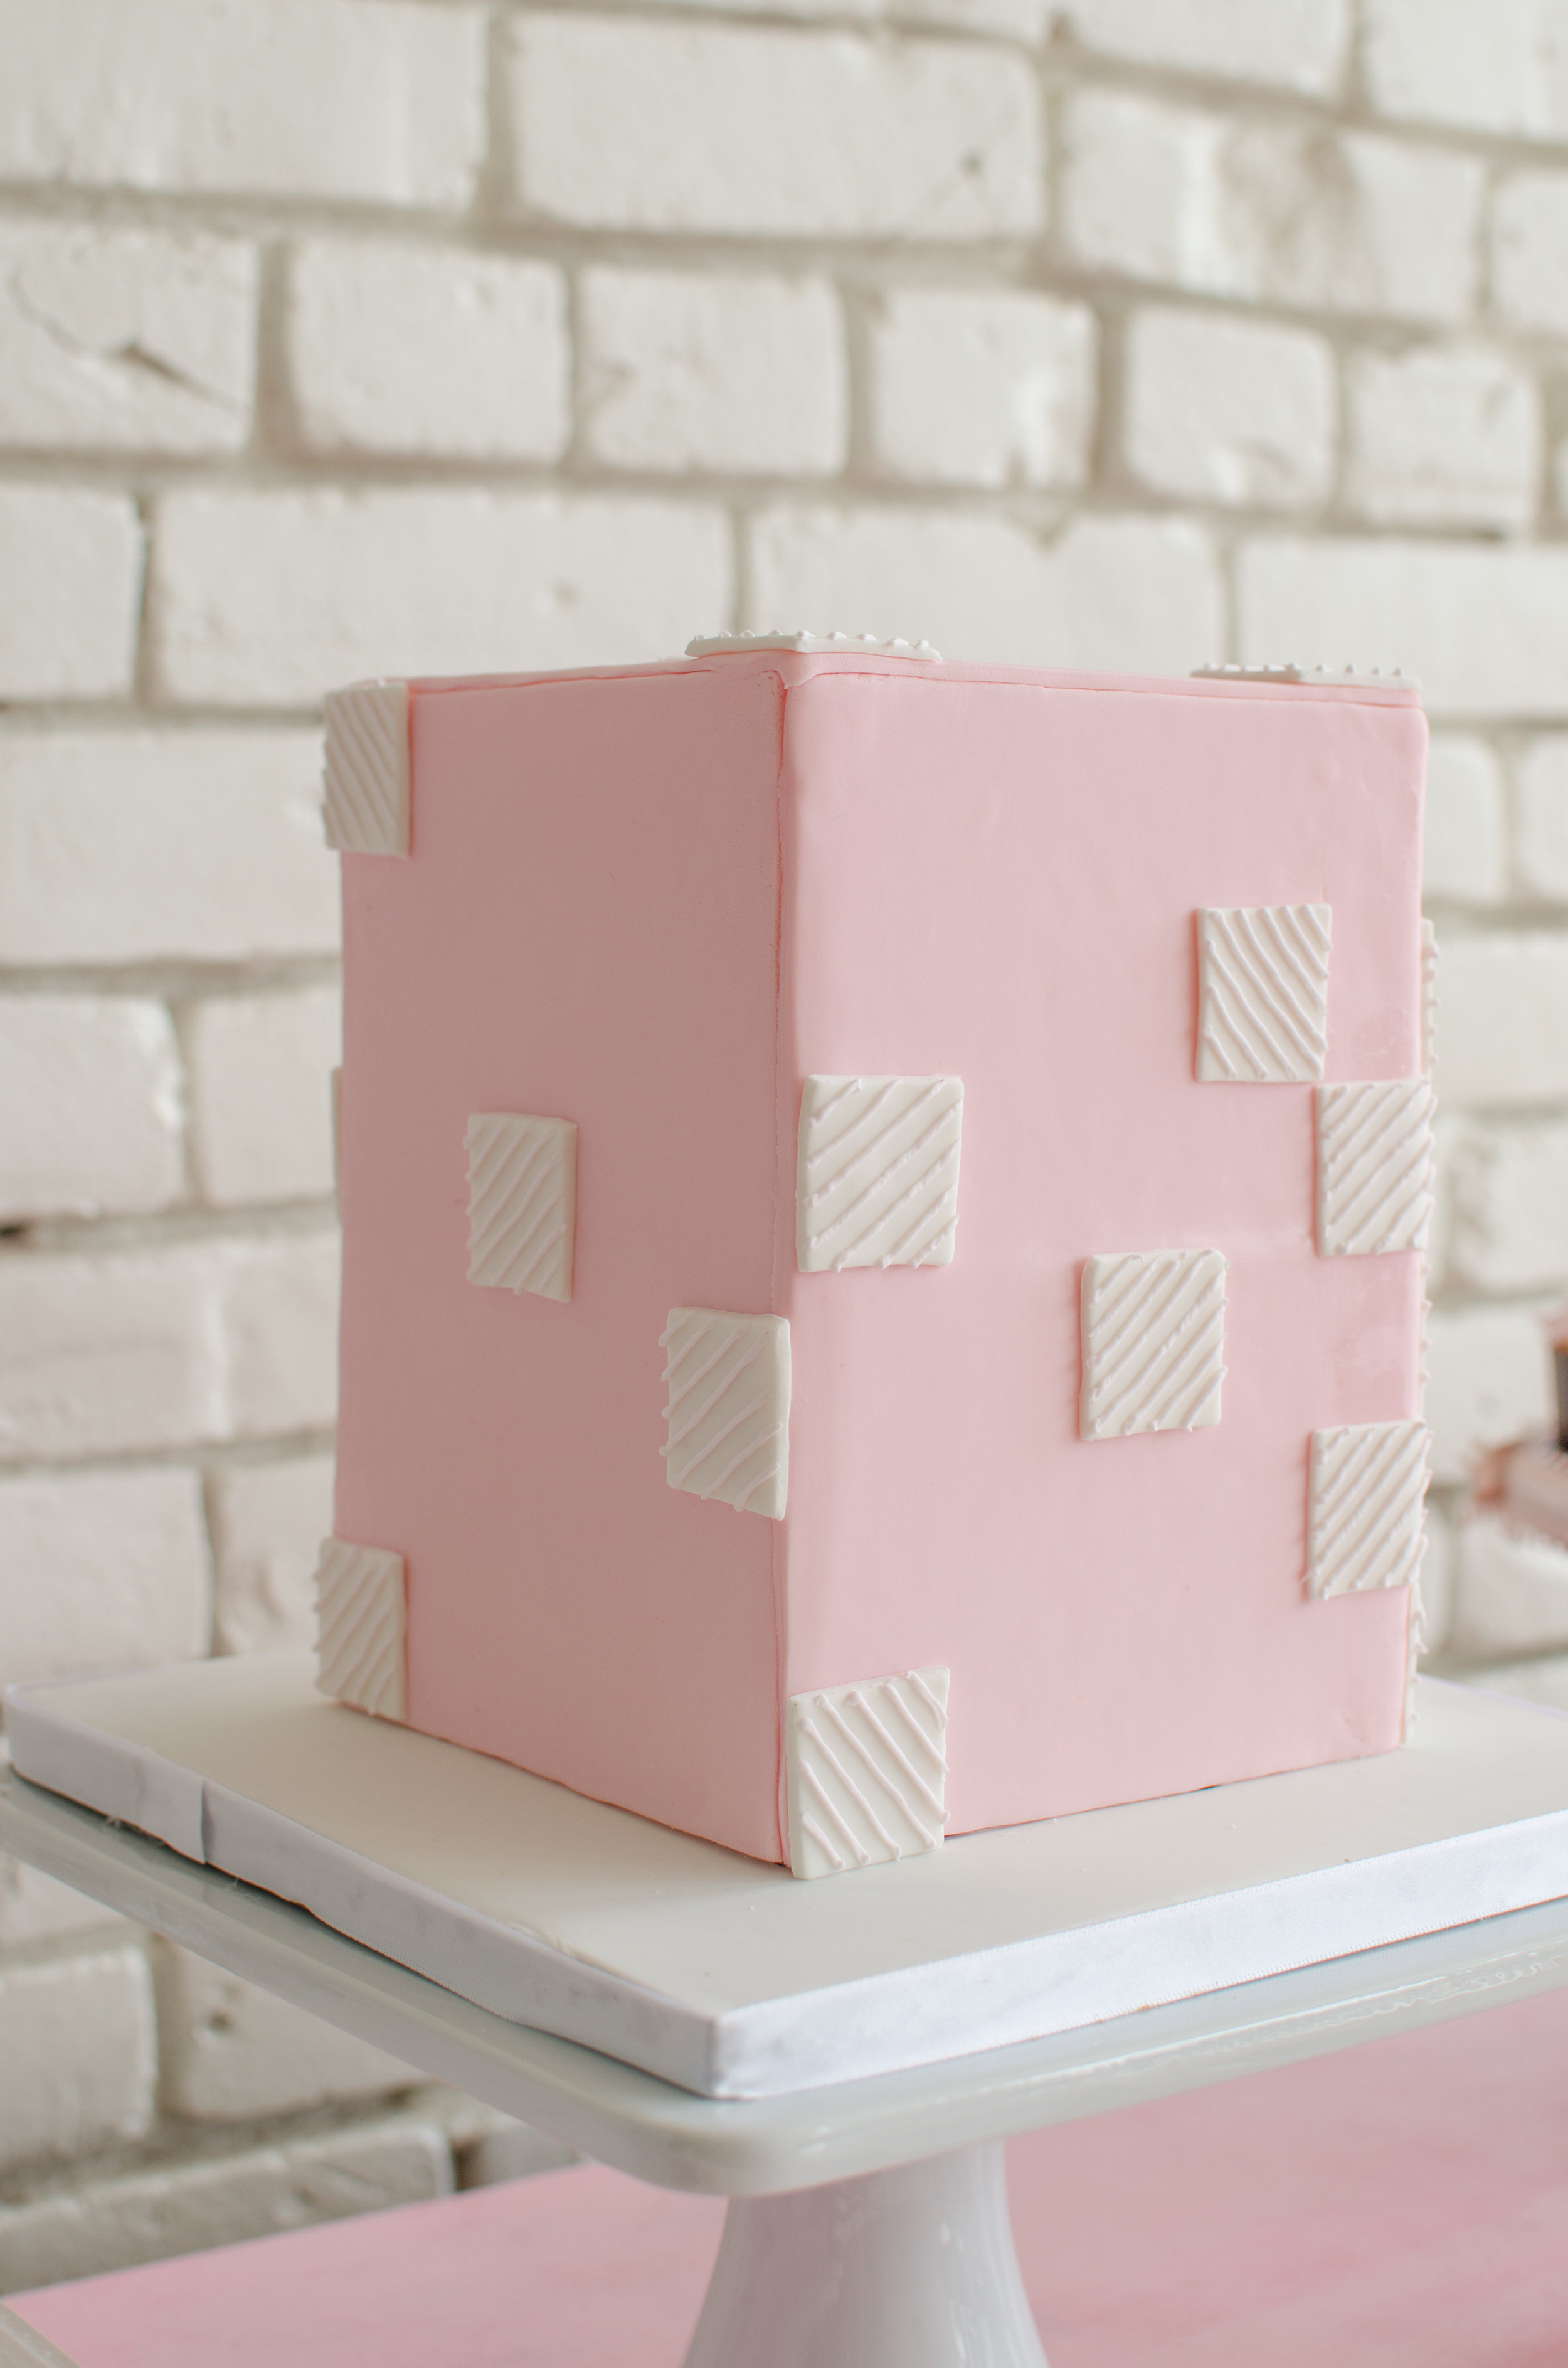 Cute modern and geometric cake idea! Perfectly pink without being too girly!